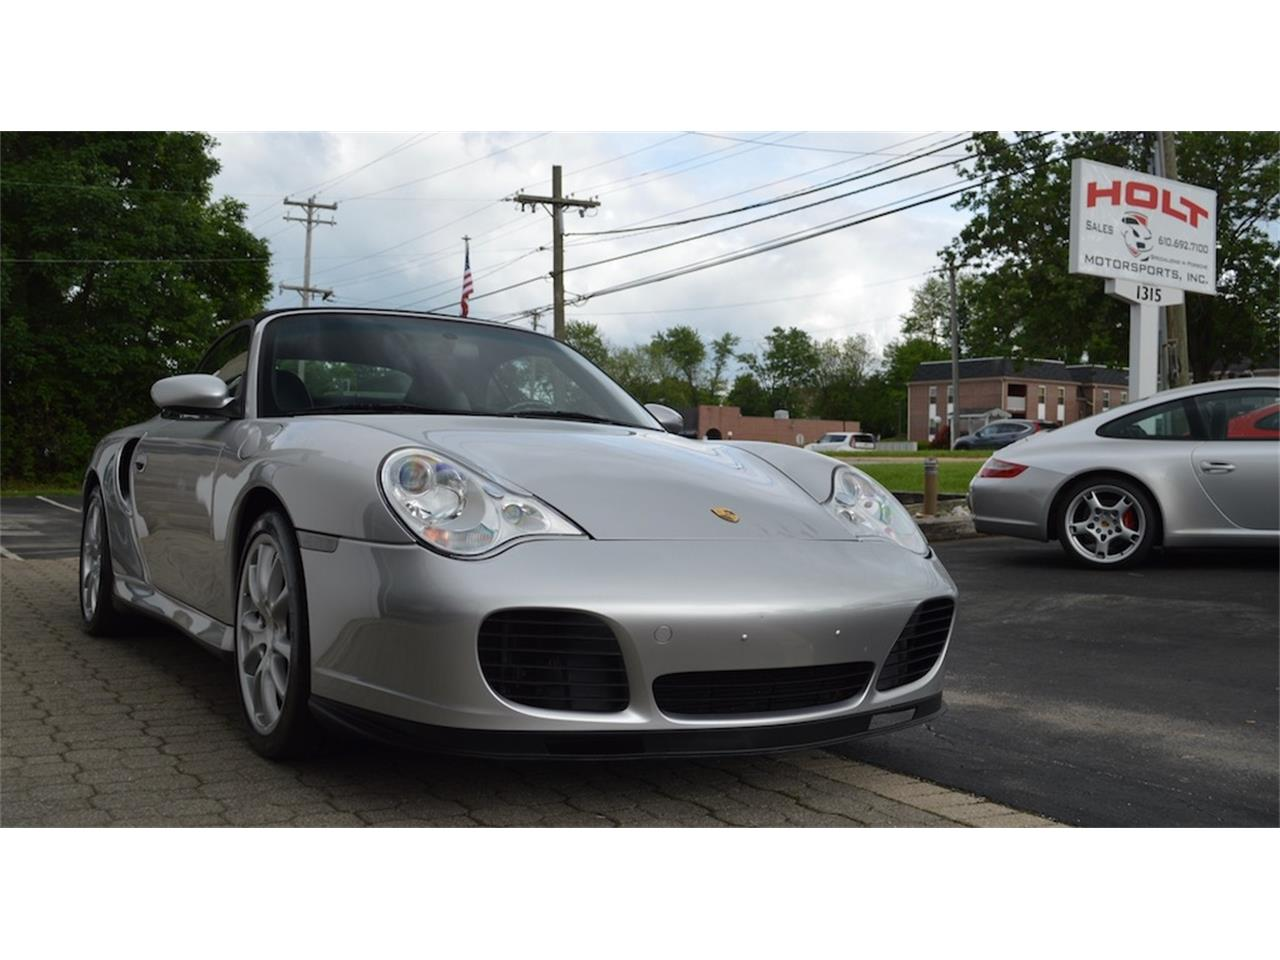 Large Picture of '04 Porsche 996 Turbo Cabriolet Offered by Holt Motorsports - NQV0